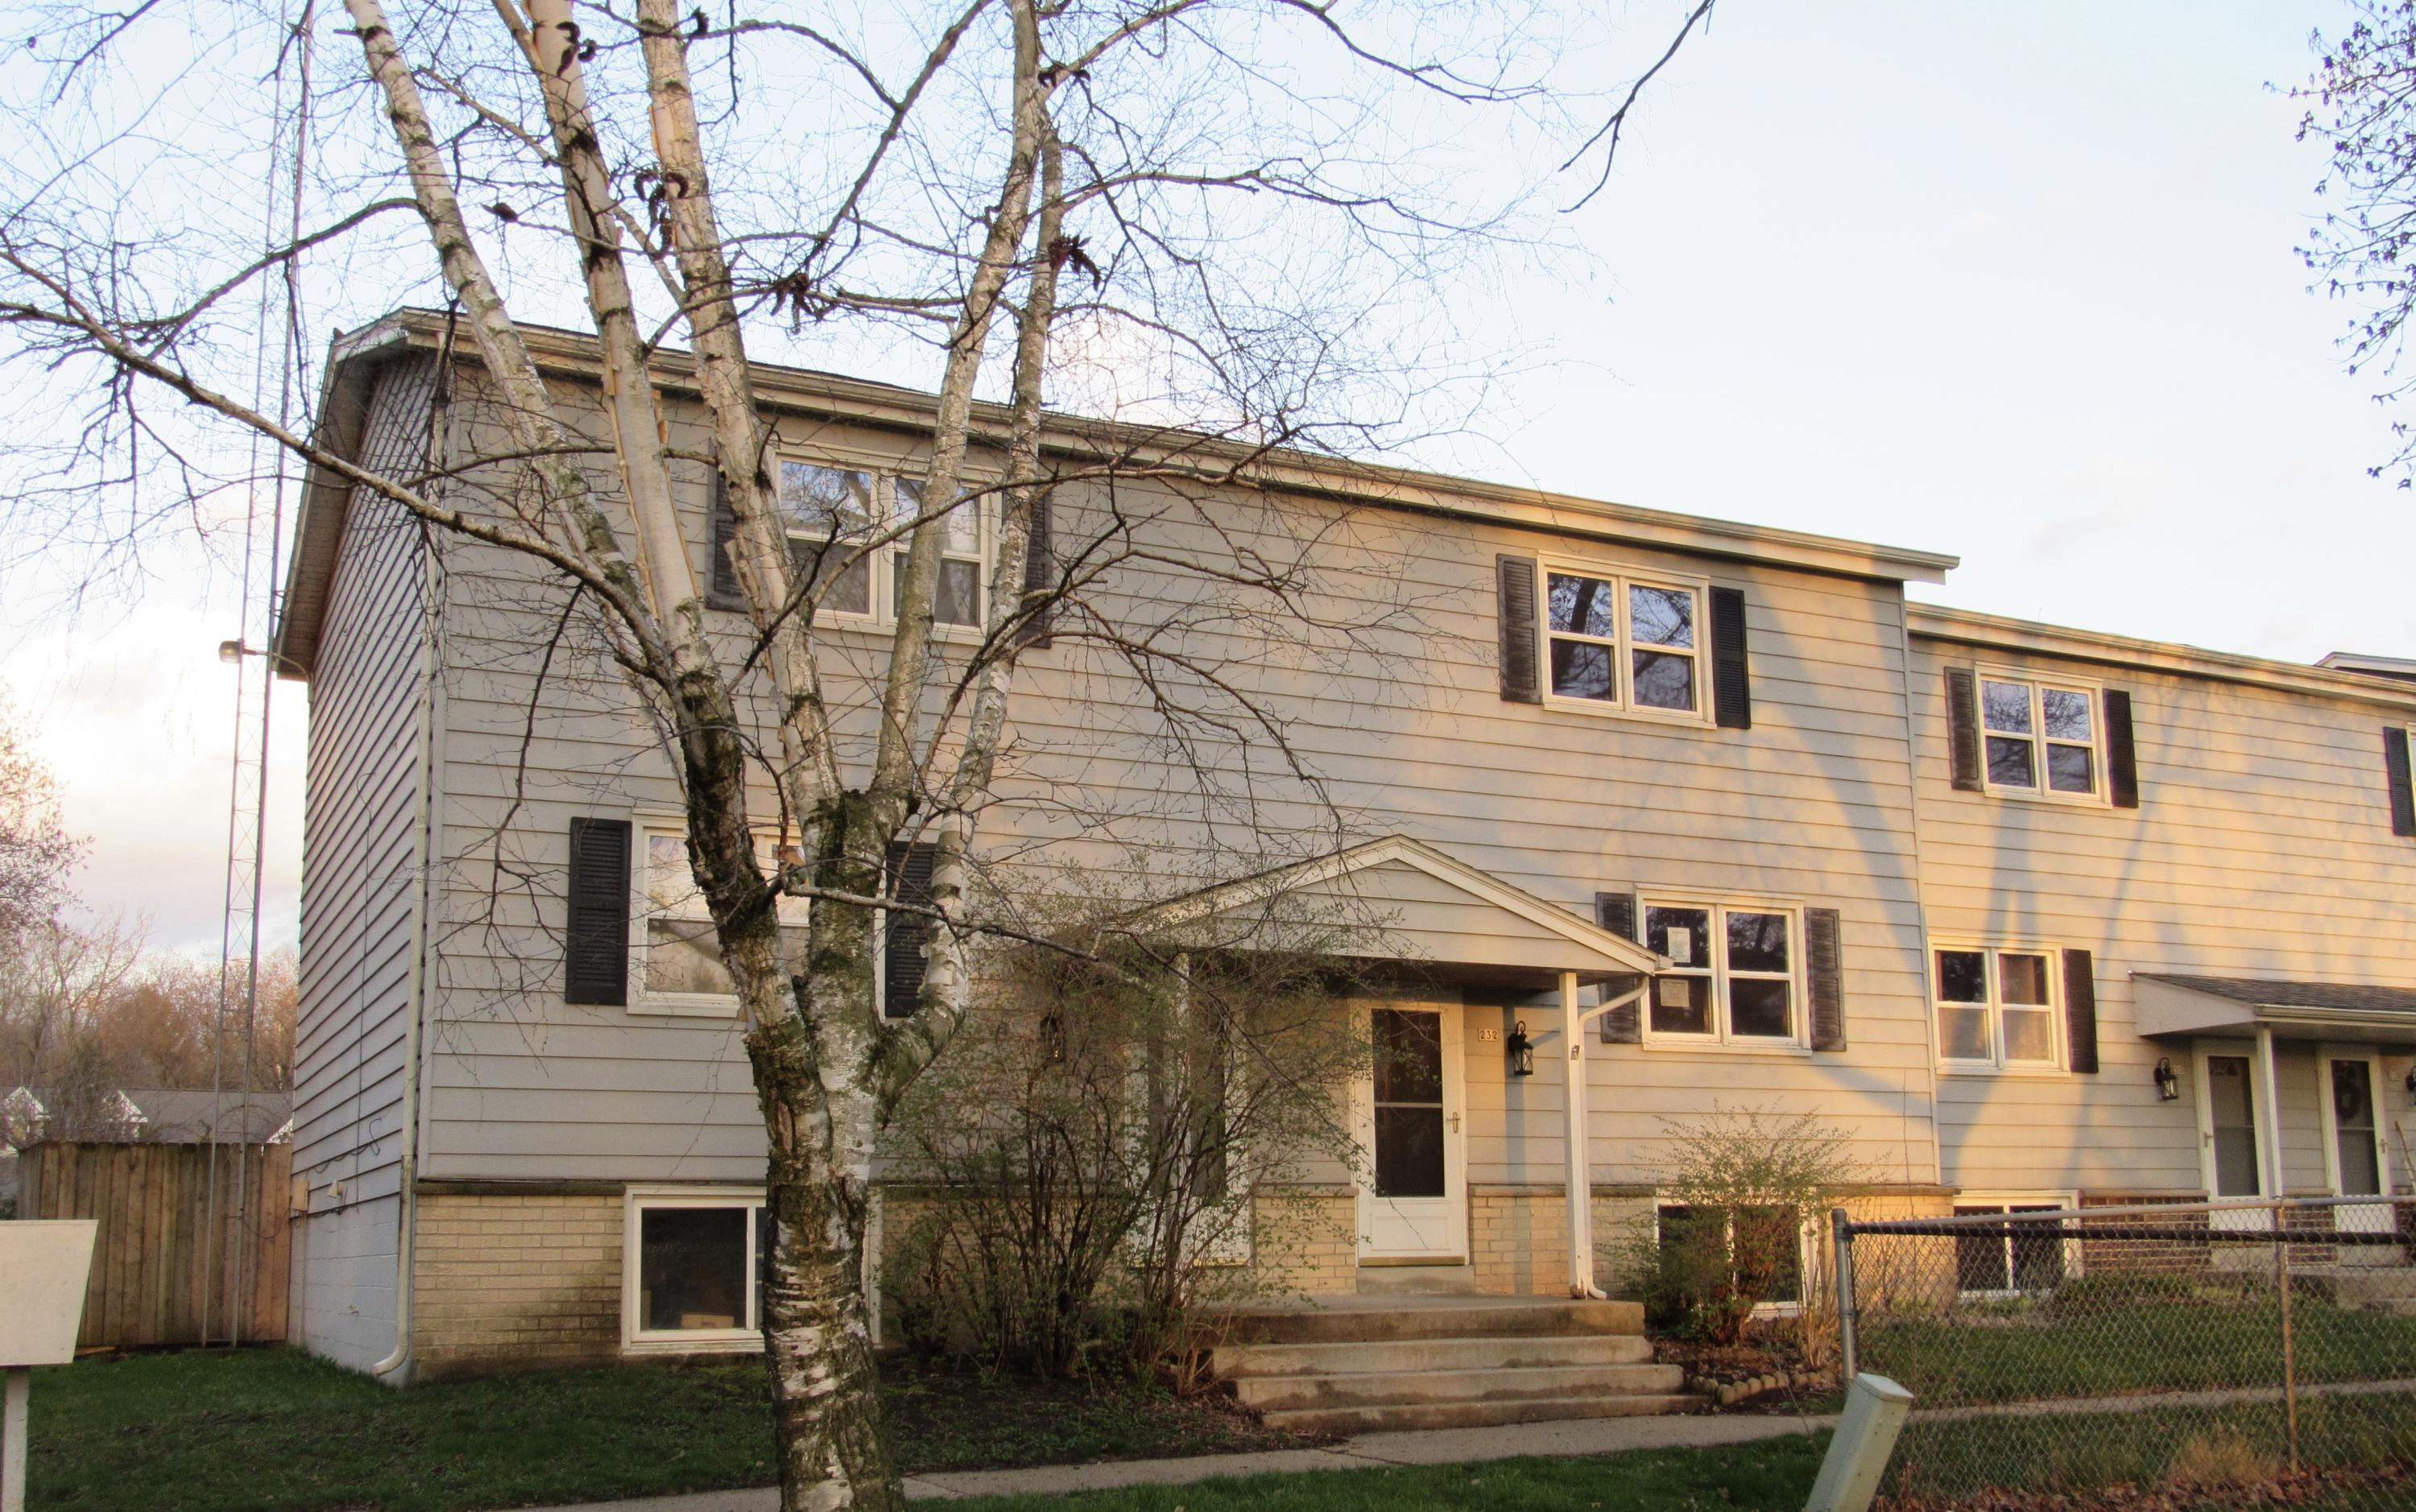 232 Wolf Dr., Dousman, Wisconsin 53118, 3 Bedrooms Bedrooms, 6 Rooms Rooms,1 BathroomBathrooms,Condominiums,For Sale,Wolf Dr.,1,1687578